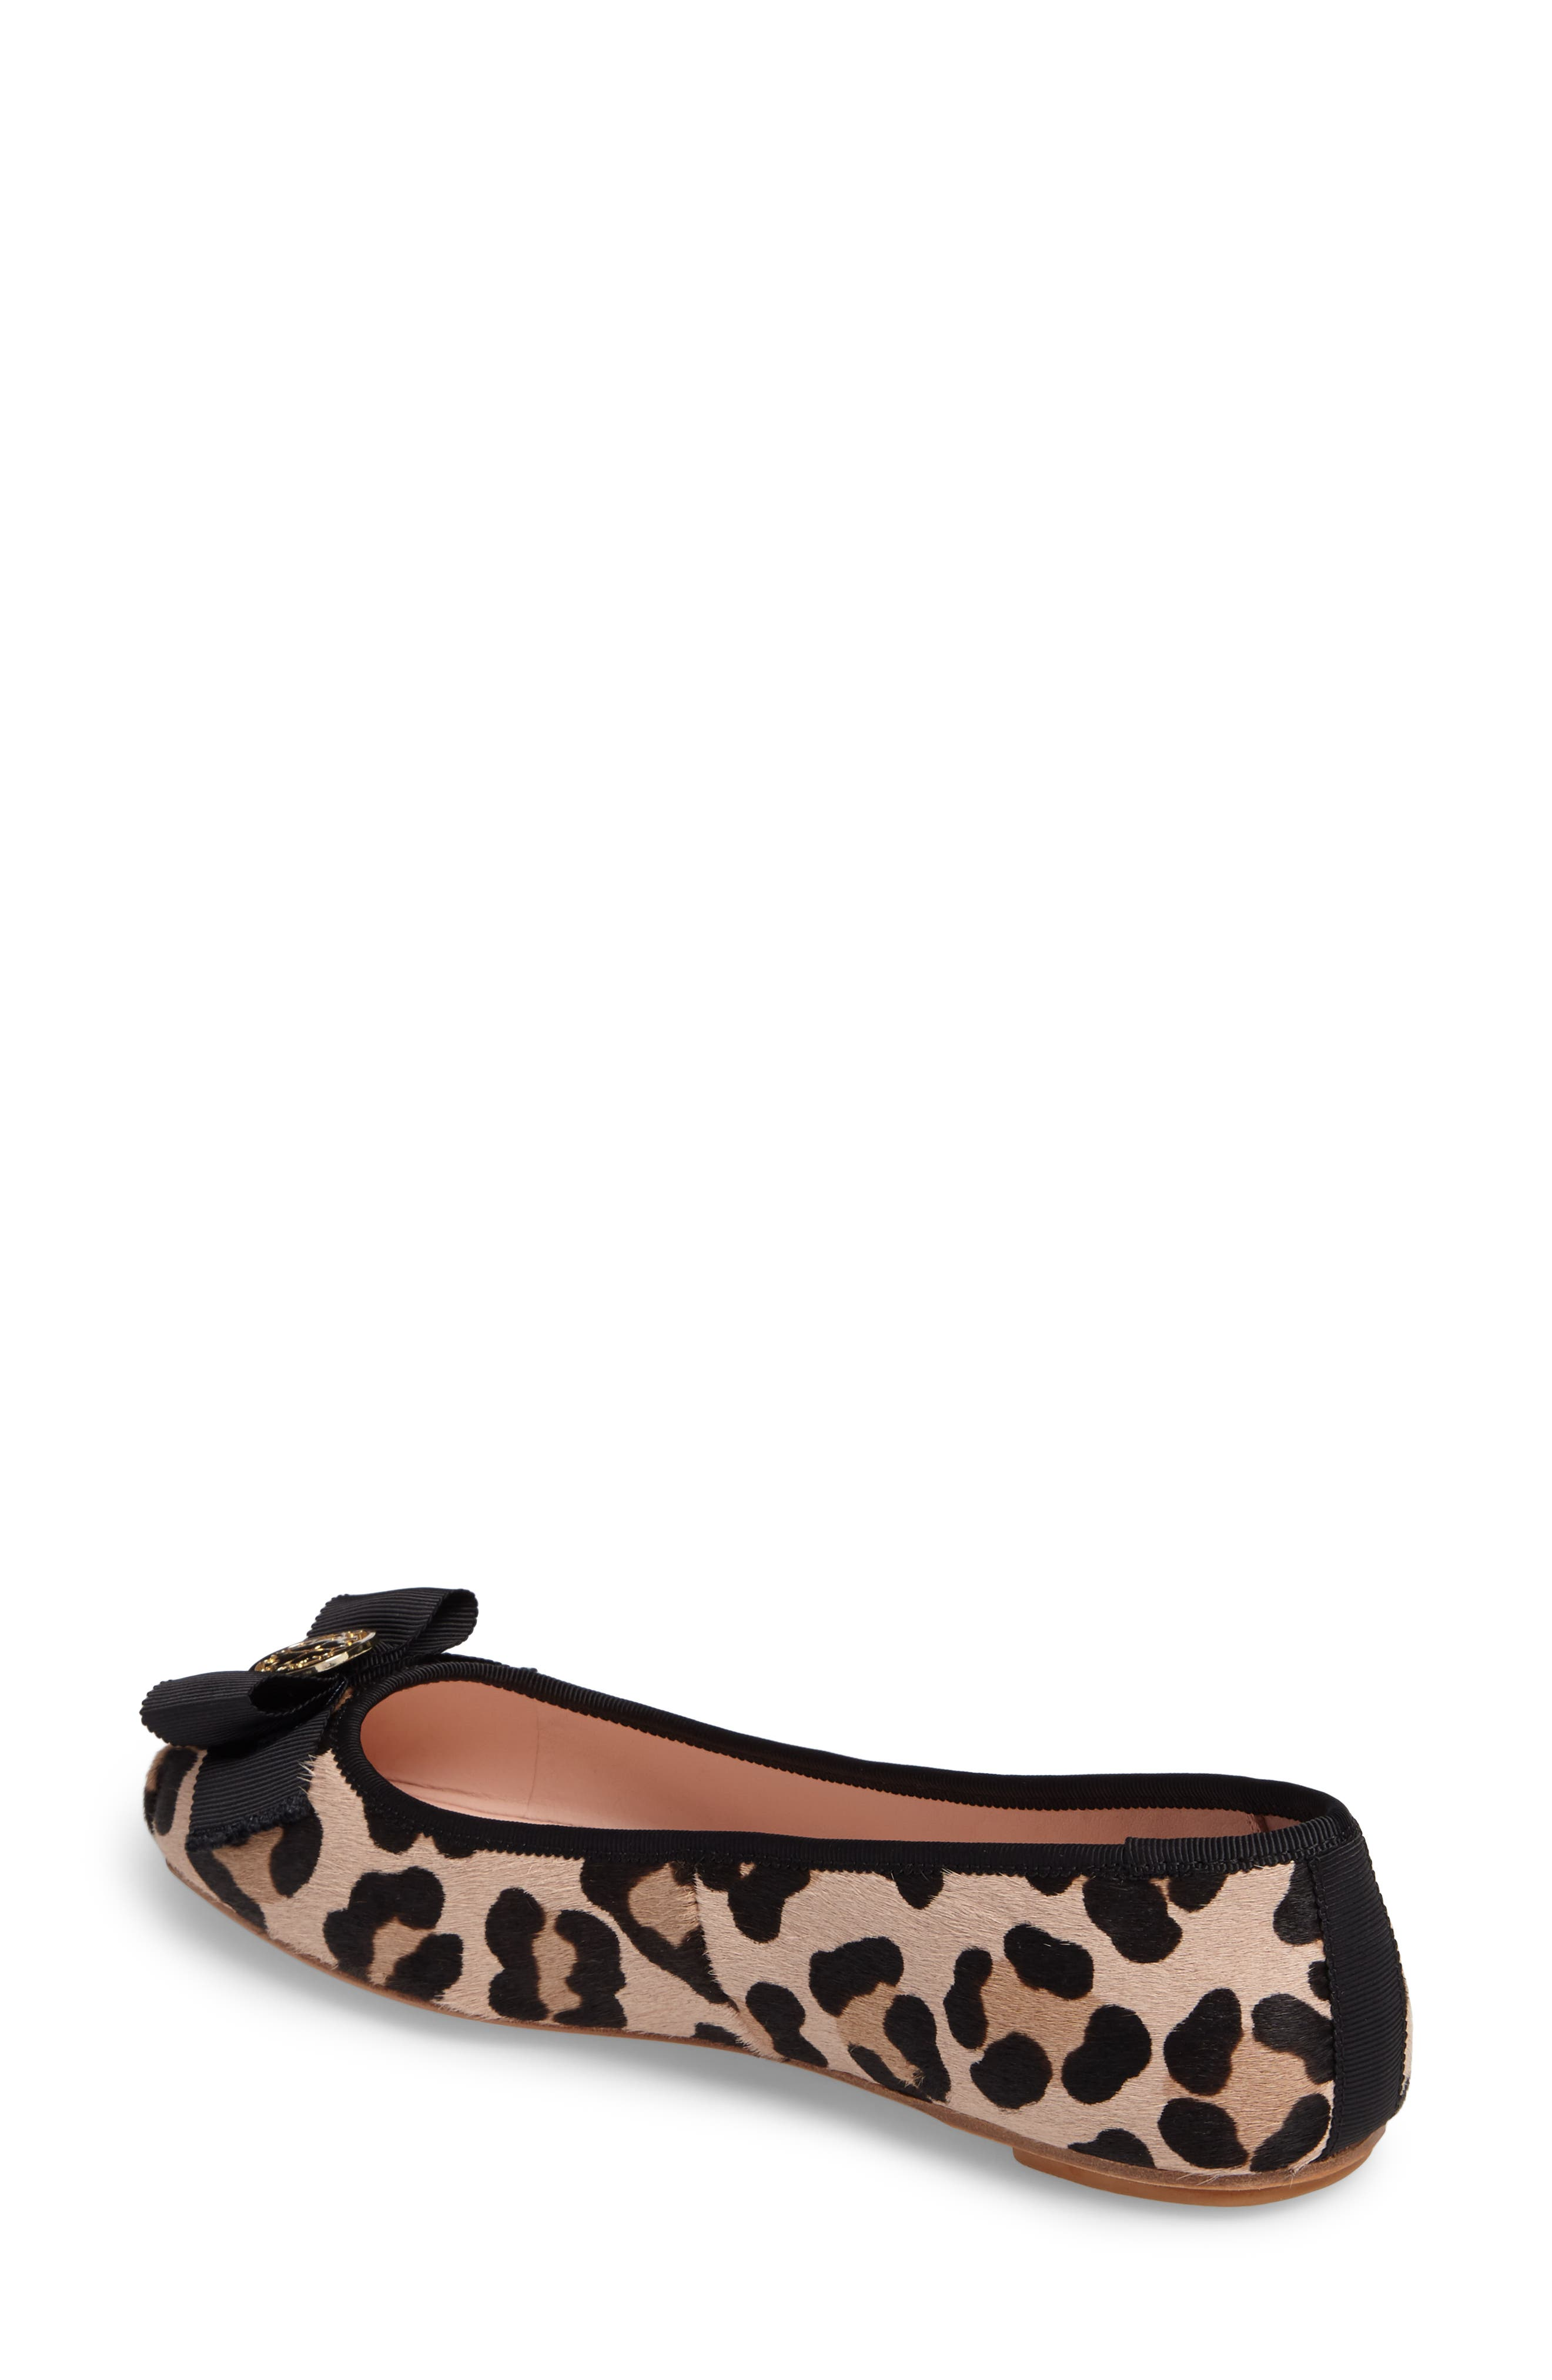 Alternate Image 3  - kate spade new york fontana too genuine calf hair ballet flat (Women)